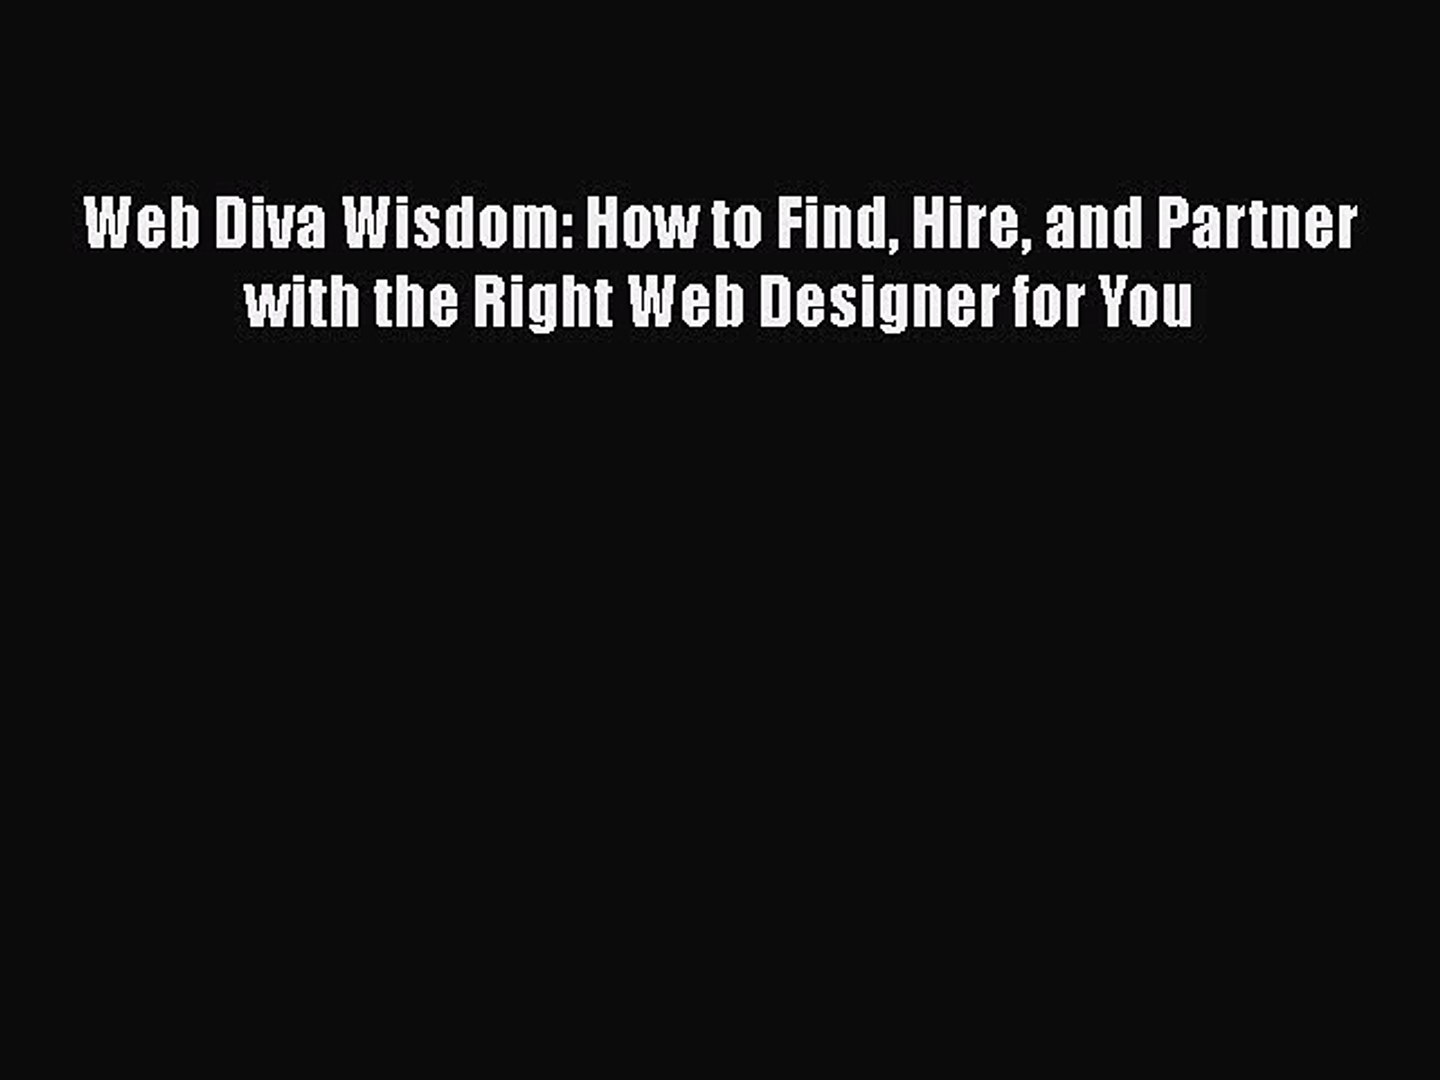 Pdf Download Web Diva Wisdom How To Find Hire And Partner With The Right Web Designer For Video Dailymotion